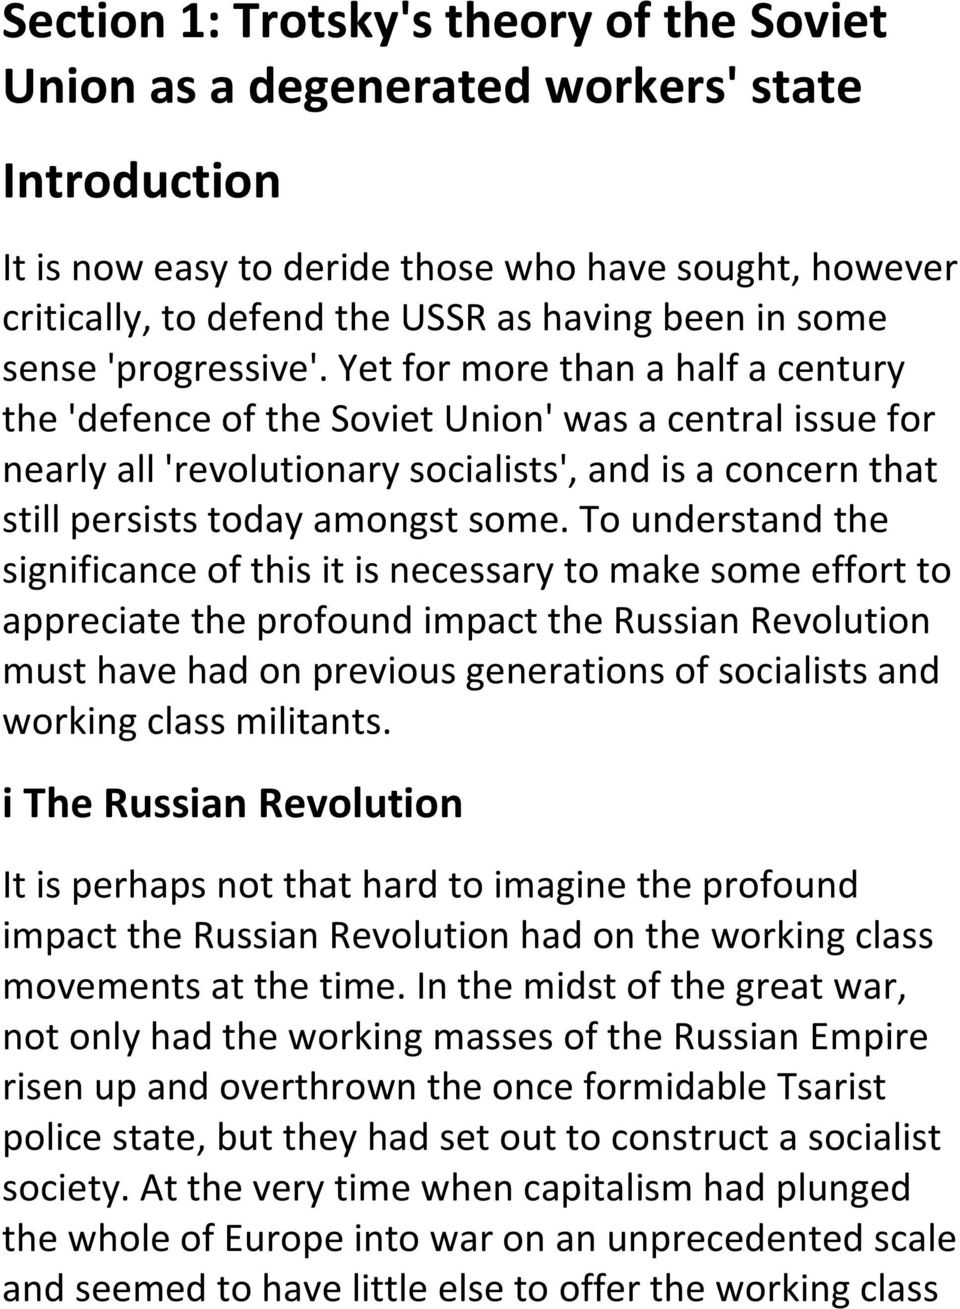 Yet for more than a half a century the 'defence of the Soviet Union' was a central issue for nearly all 'revolutionary socialists', and is a concern that still persists today amongst some.